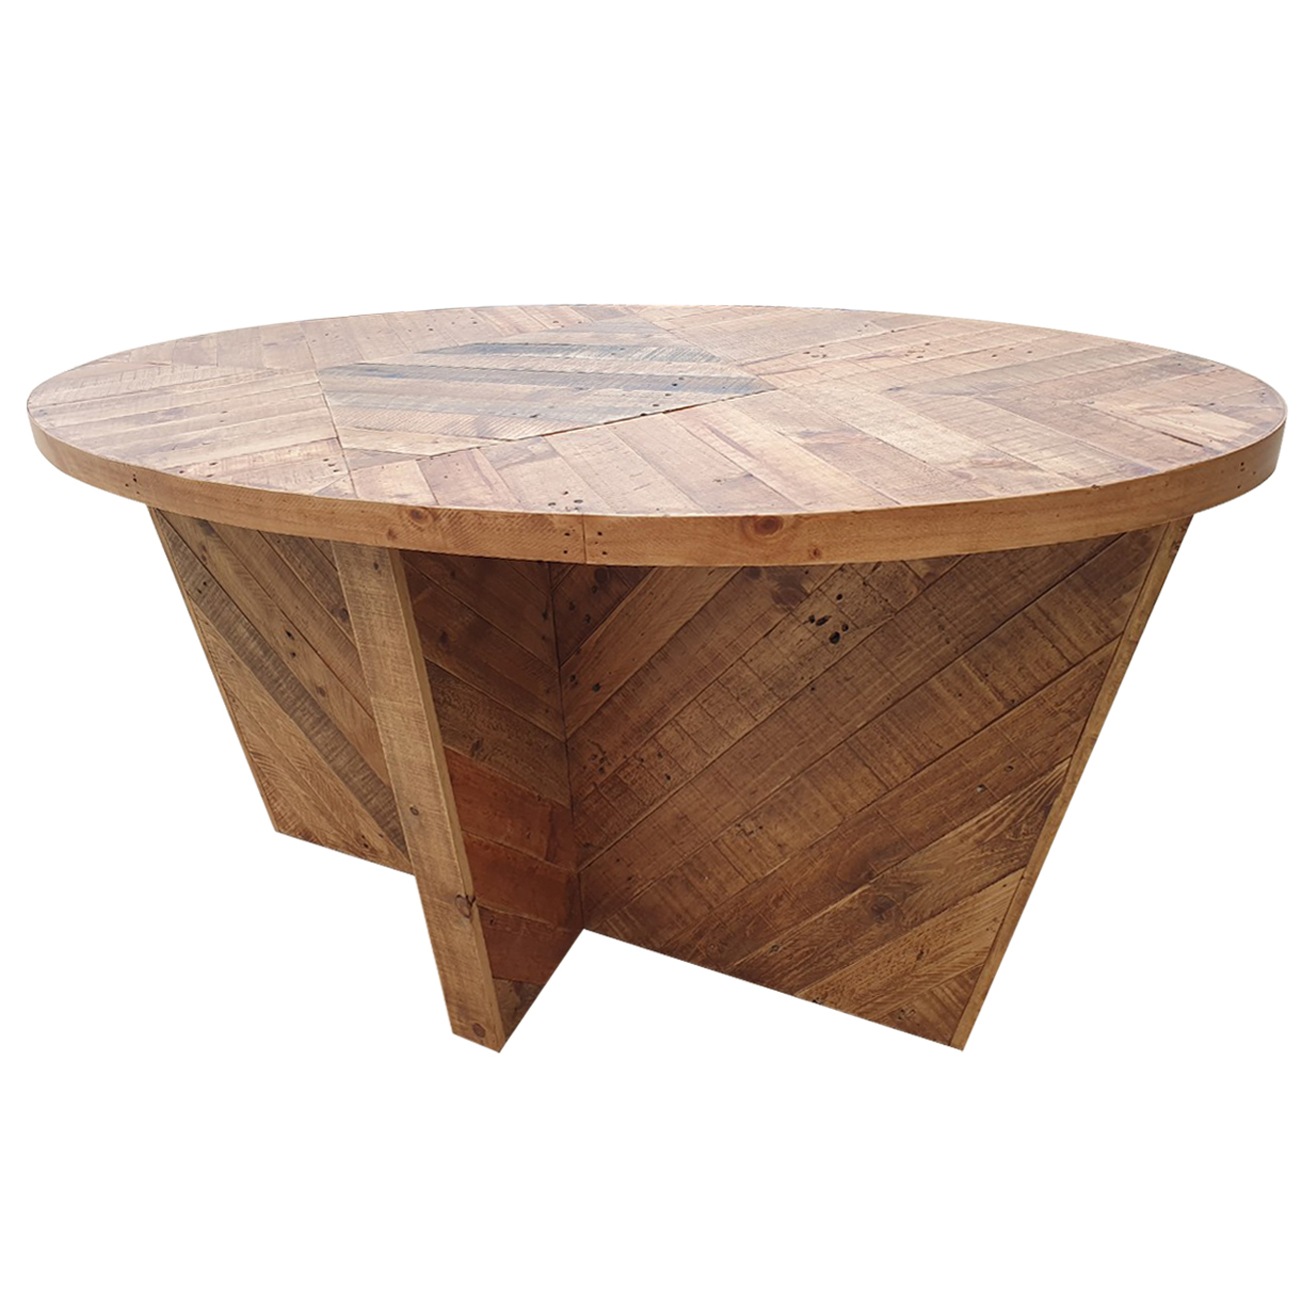 Reclaimed Droplets Dining Table